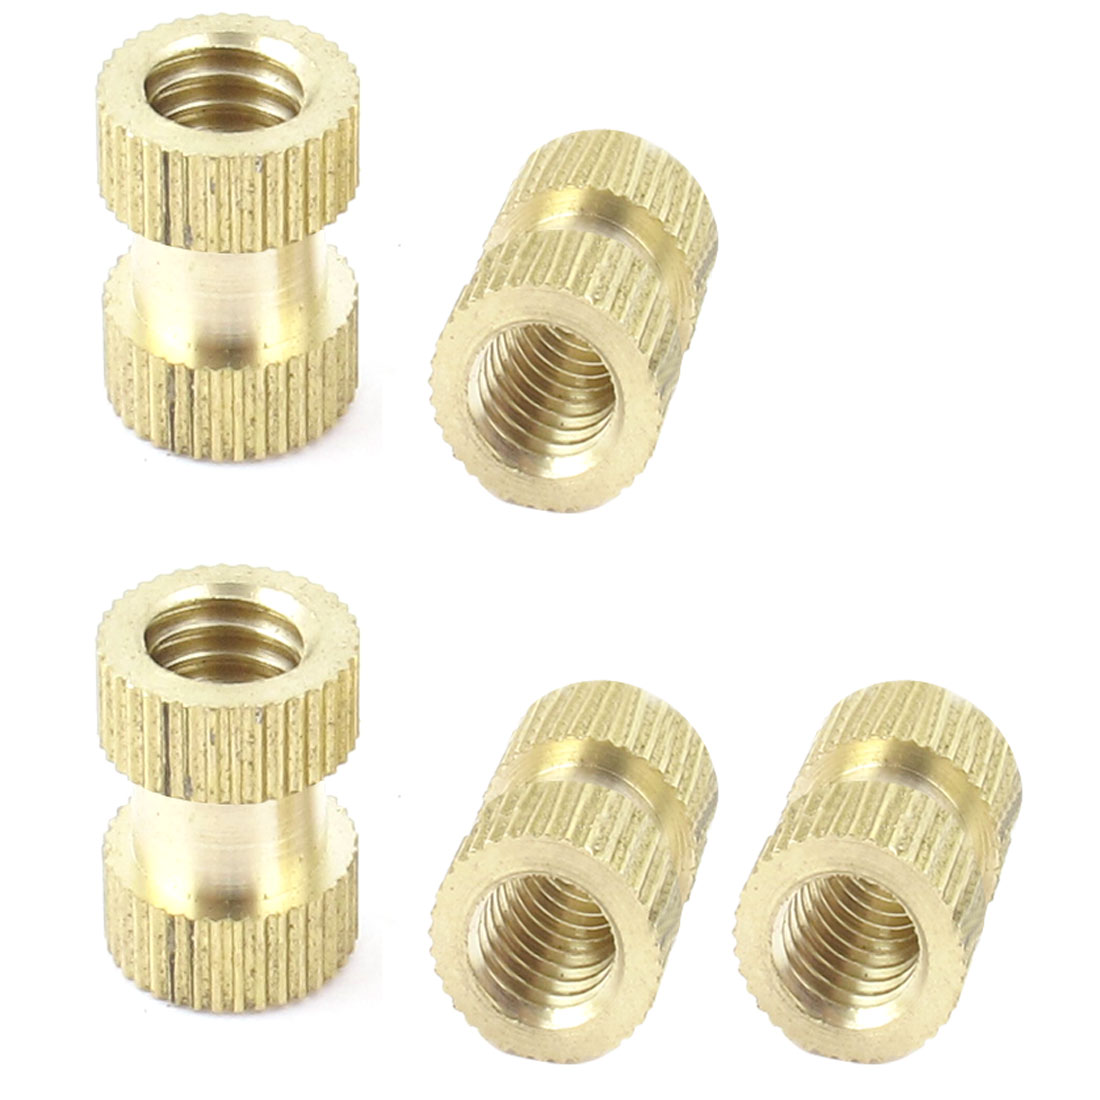 5Pcs M8 Thread Solid Brass Knurled Thumb Nut Insert Embedded Part 16mm